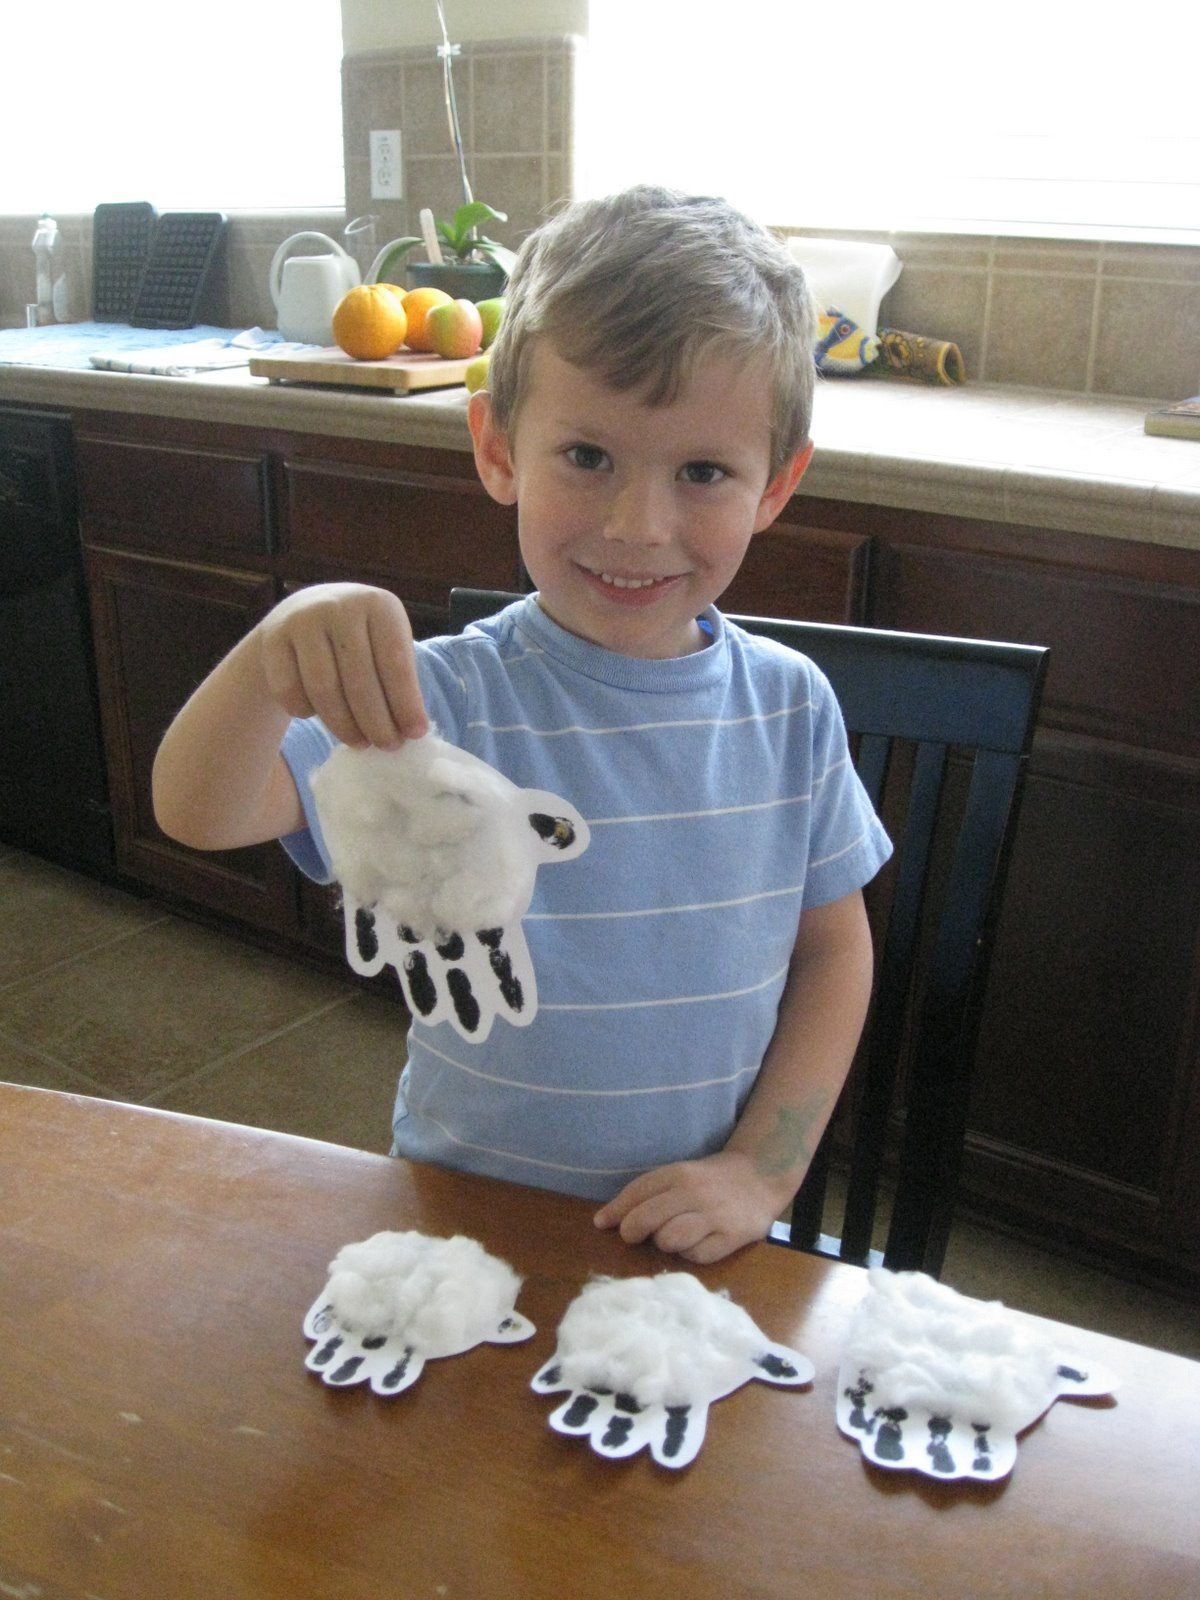 5 Halloween Crafts for Kids: Easy Projects to make with Kids |Really Funny Crafts